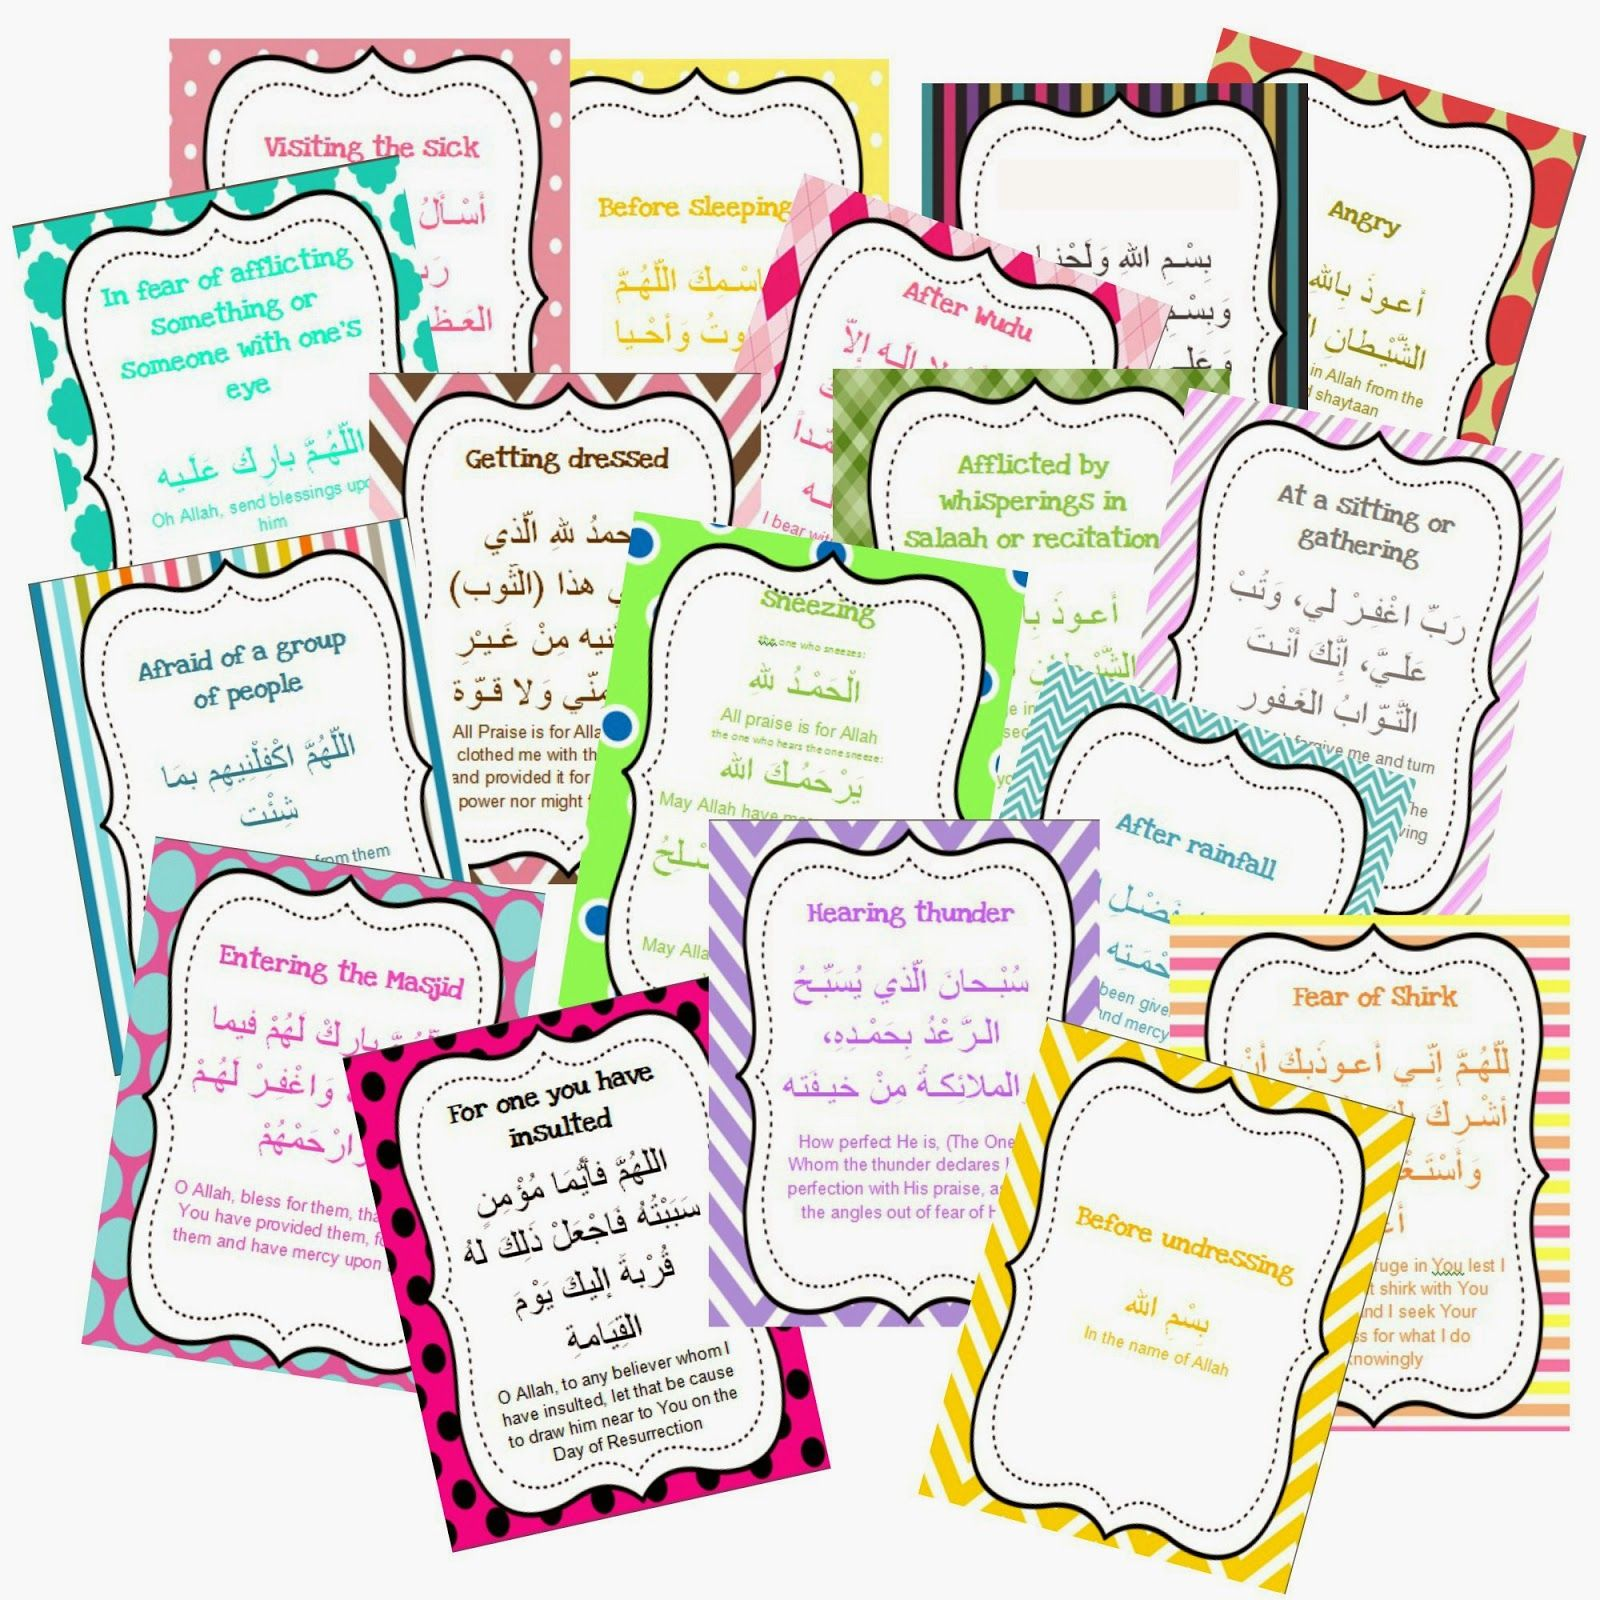 Selected Supplications From Hisnul Muslim To Print At Home